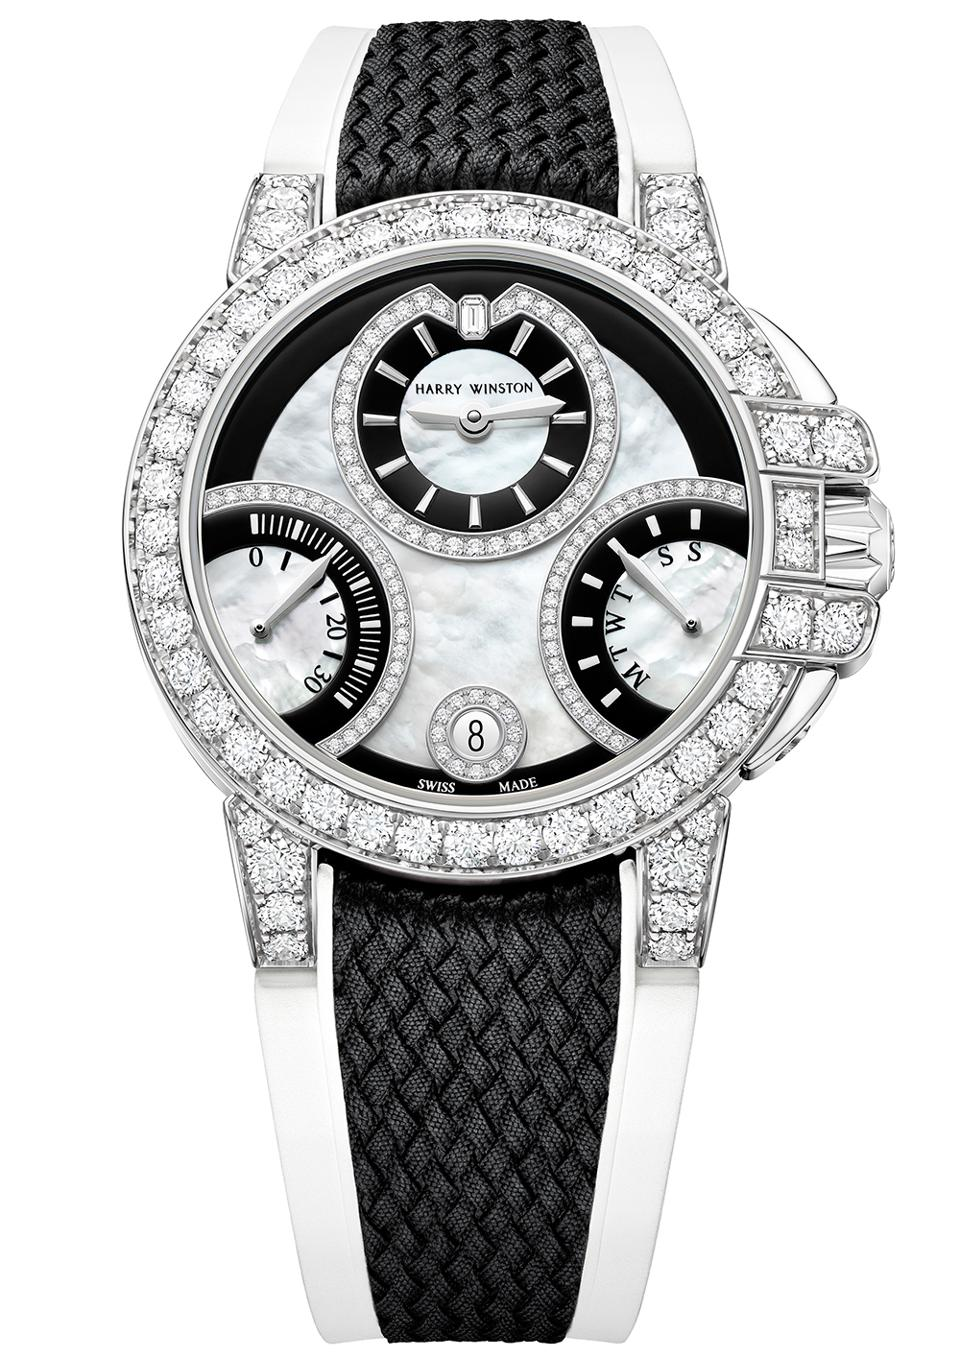 Diamond and black lacquer version in 18k gold of the Harry Winston Ocean Biretrograde Automatic 36mm collection.